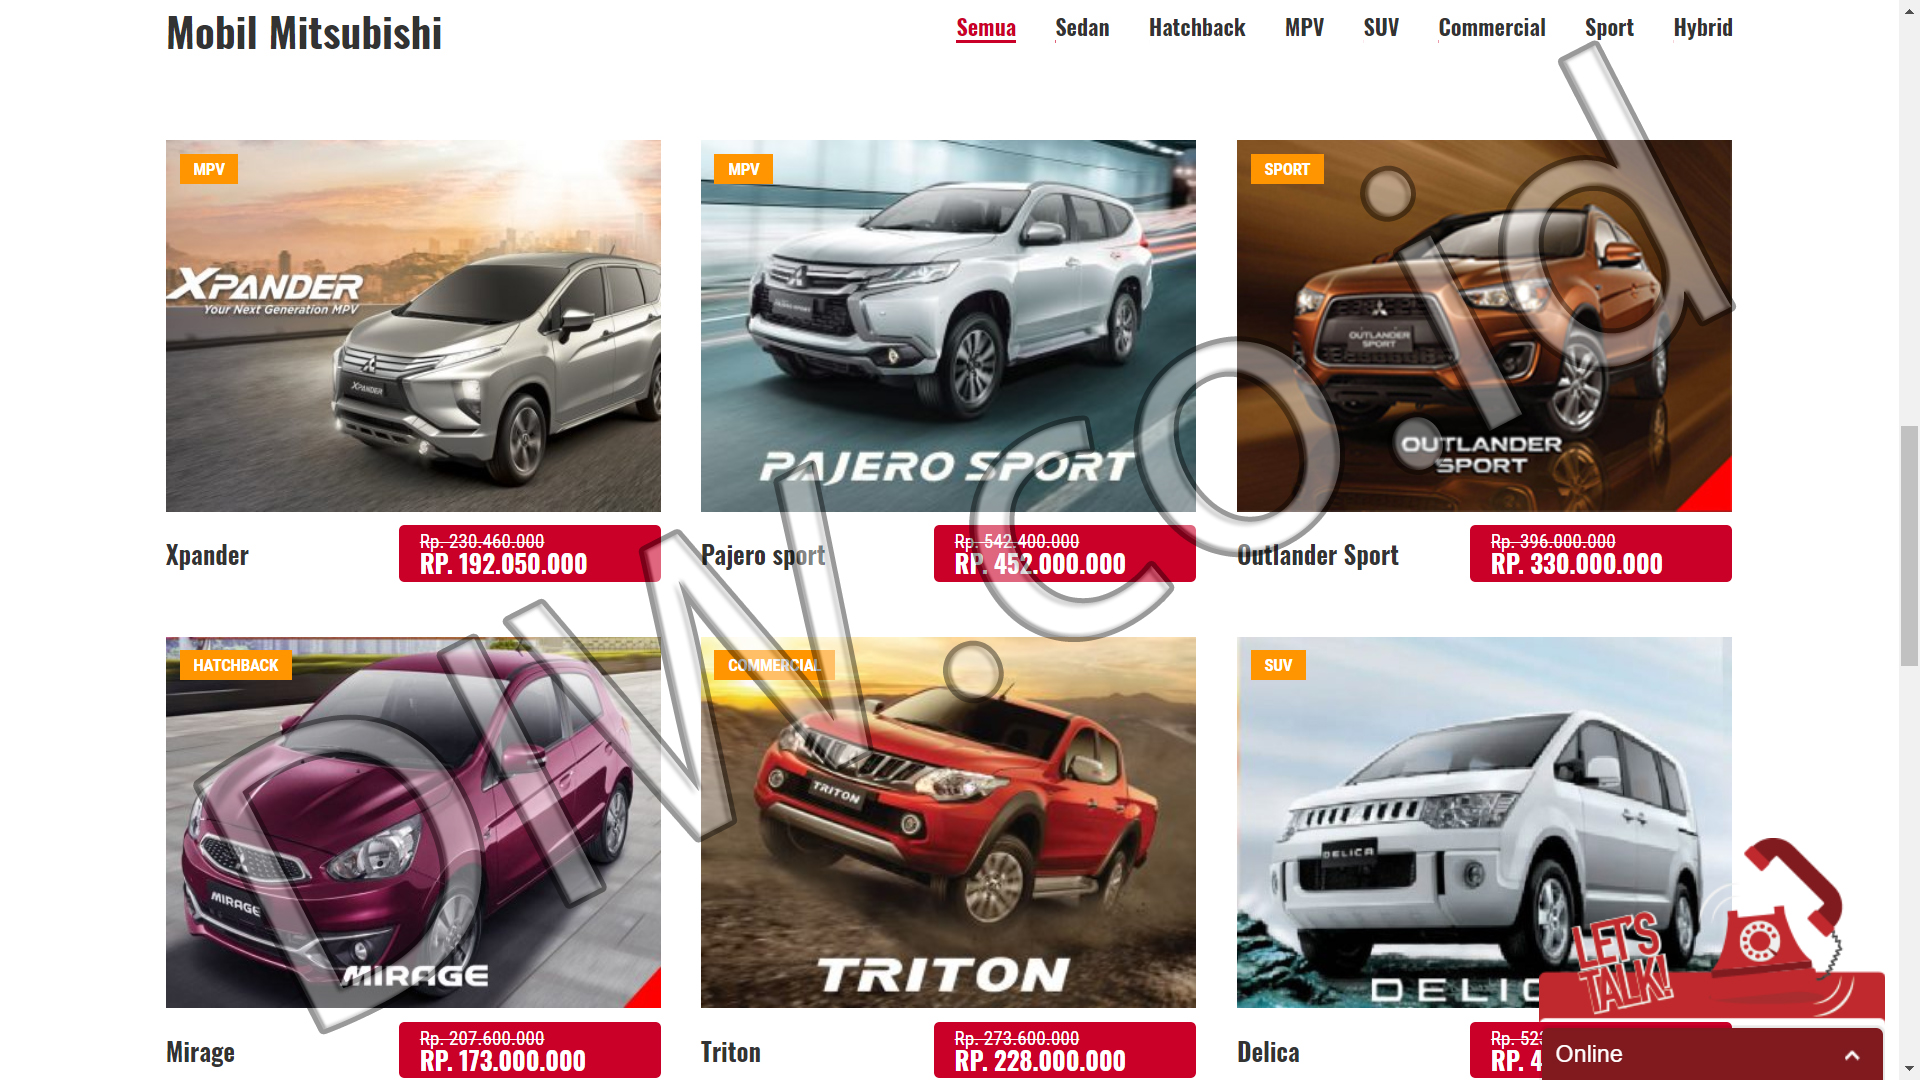 Portfolio 2 - Jakarta Dealer Mitsubishi - Andri Sunardi - Freelancer - Web Developer - CEO DIW.co.id